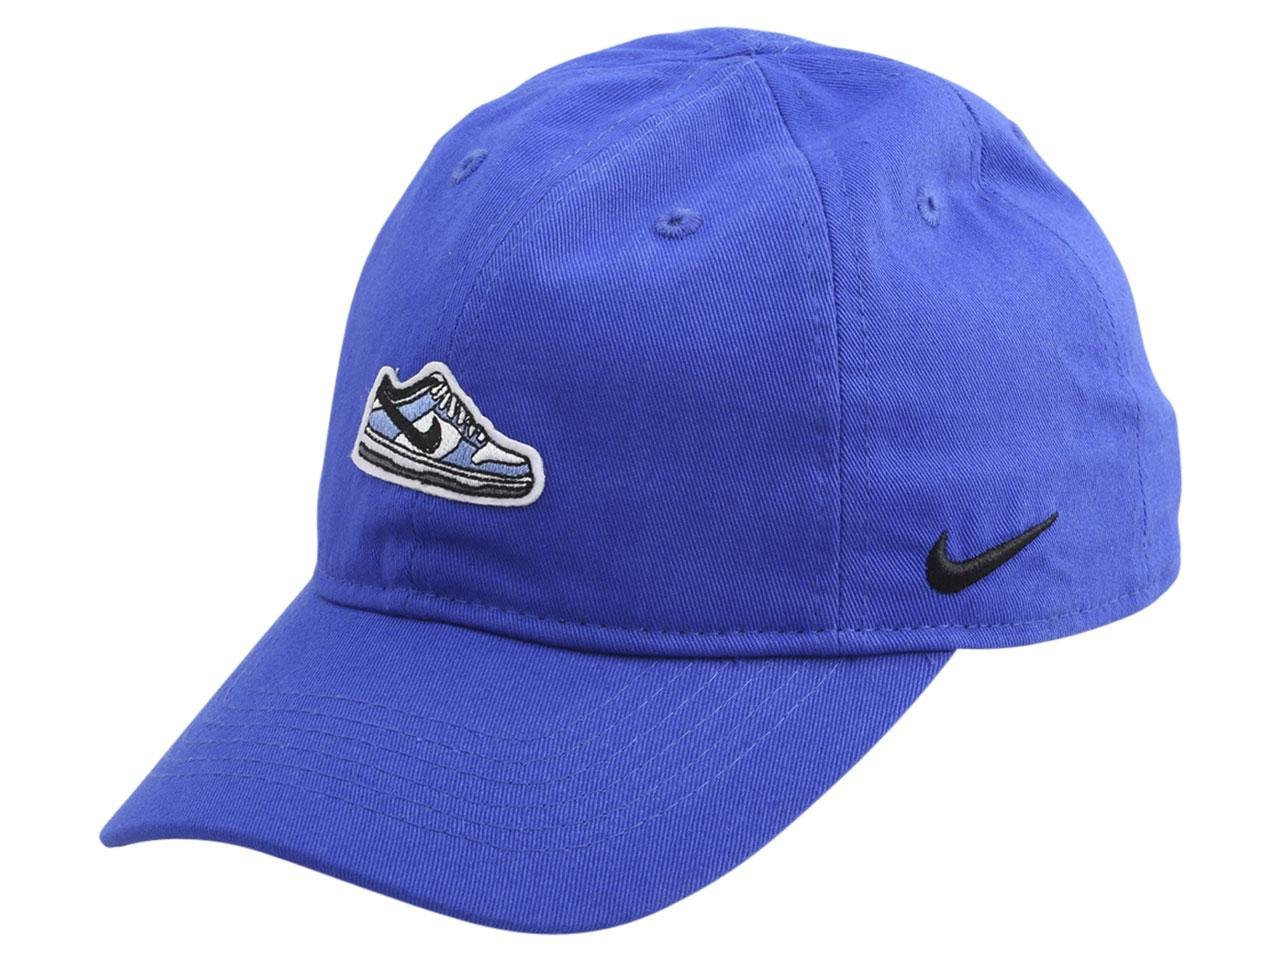 Nike Little Boy's Shoe Patch Strapback Cotton Baseball Cap Hat